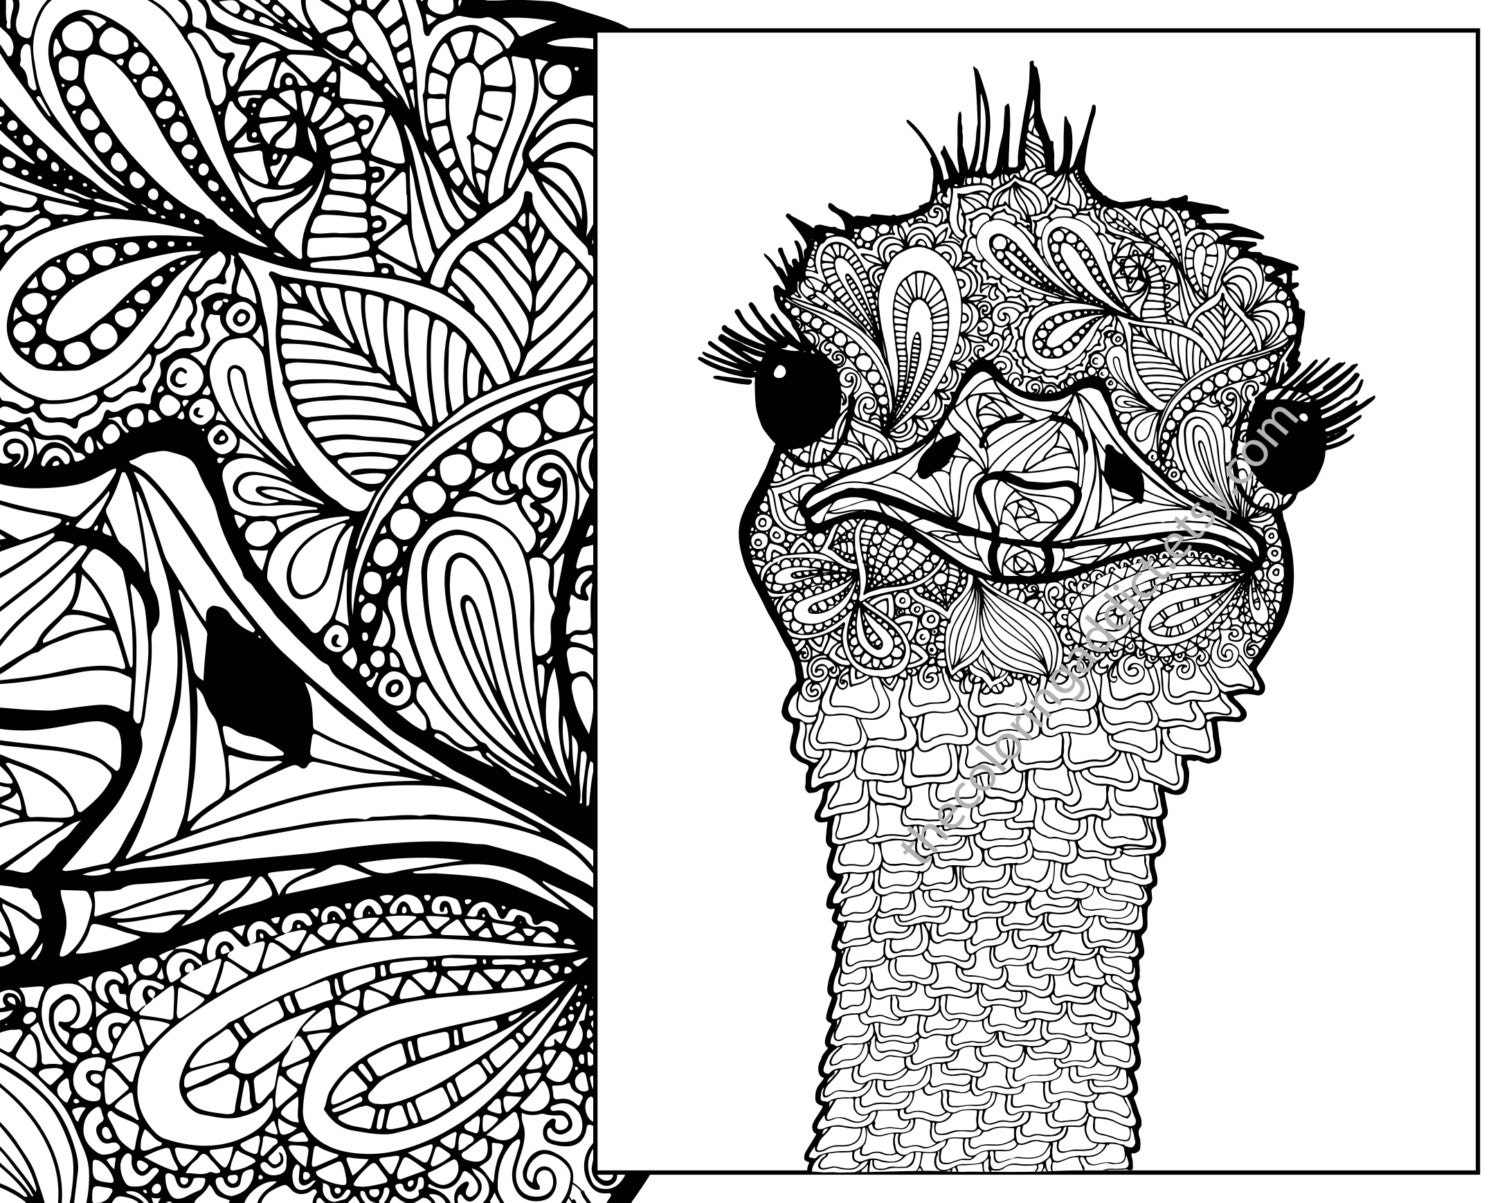 Animal Zentangle Coloring Pages : ostrich coloring sheet animal coloring pdf zentangle adult